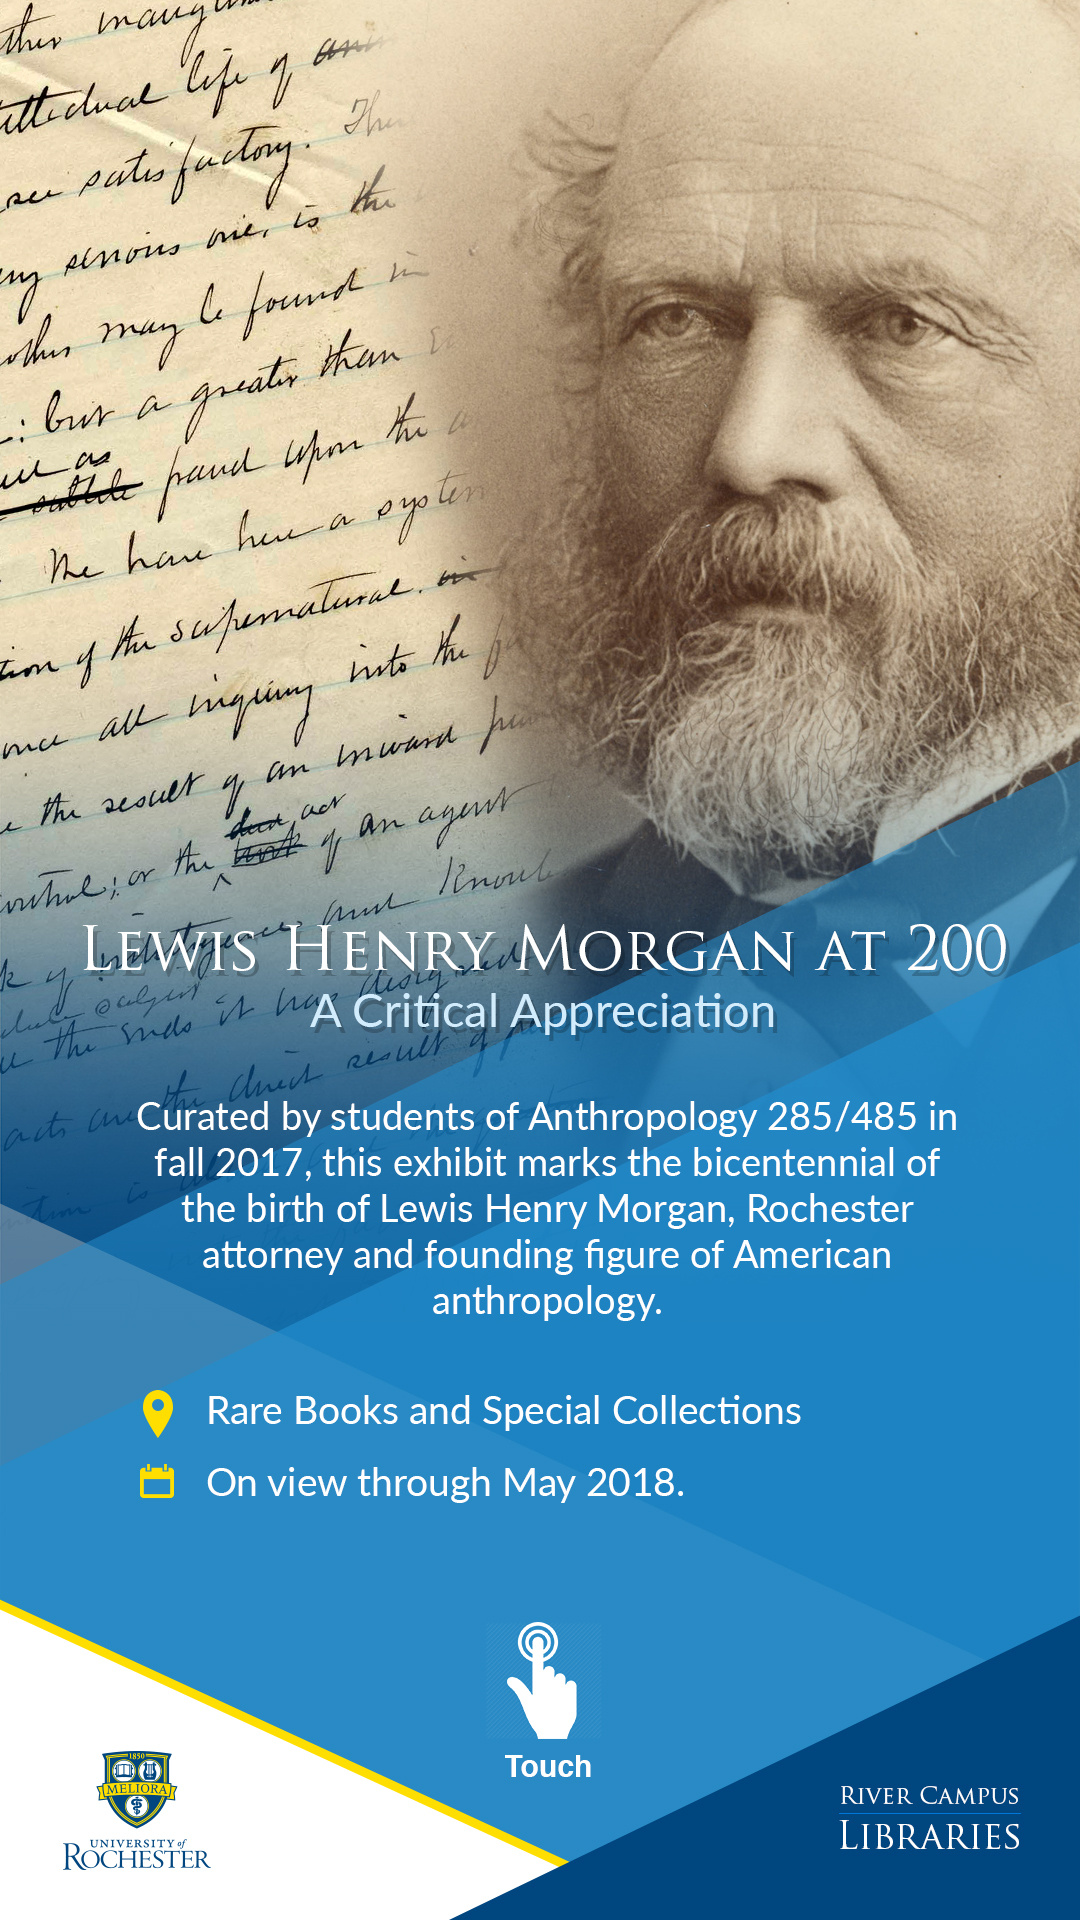 Exhibit: Lewis Henry Morgan at 200: A Critical Appreciation